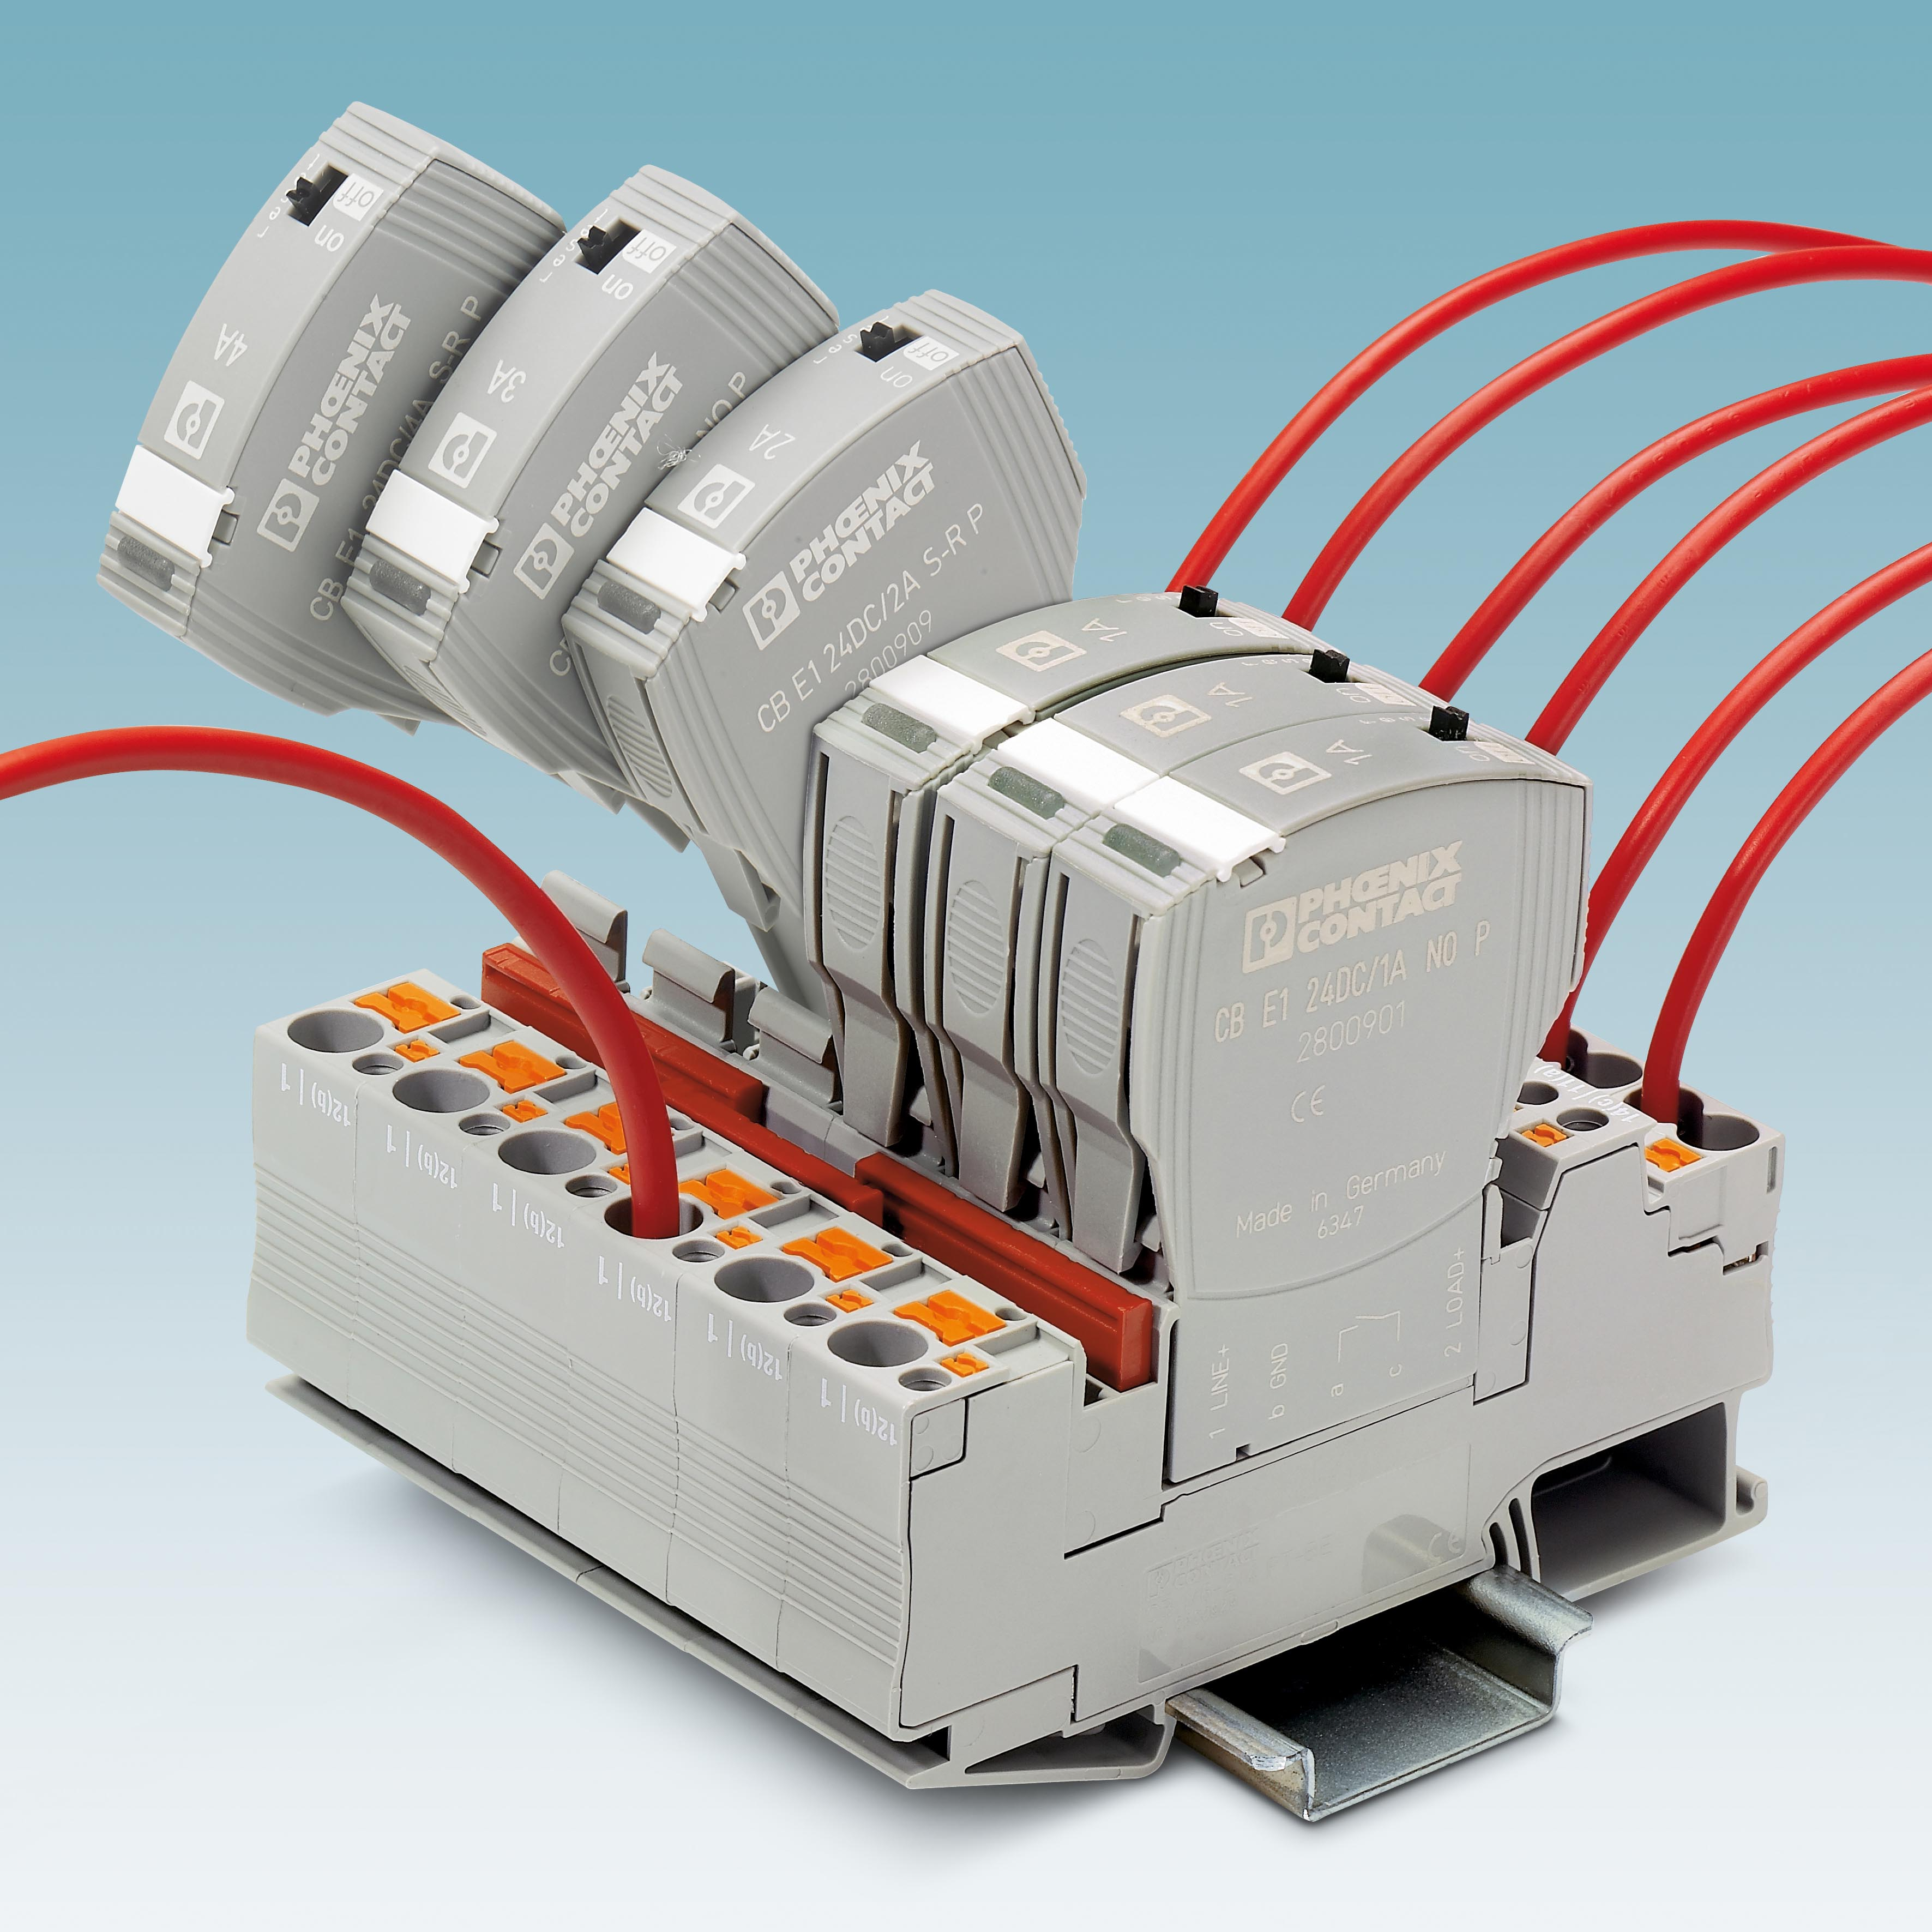 Reliable Protection With Electronic Device Circuit Breakers Ee March 2013electronics Project Circuts 4 Multi Channel Of The Cbmc Type Have An Io Link Interface